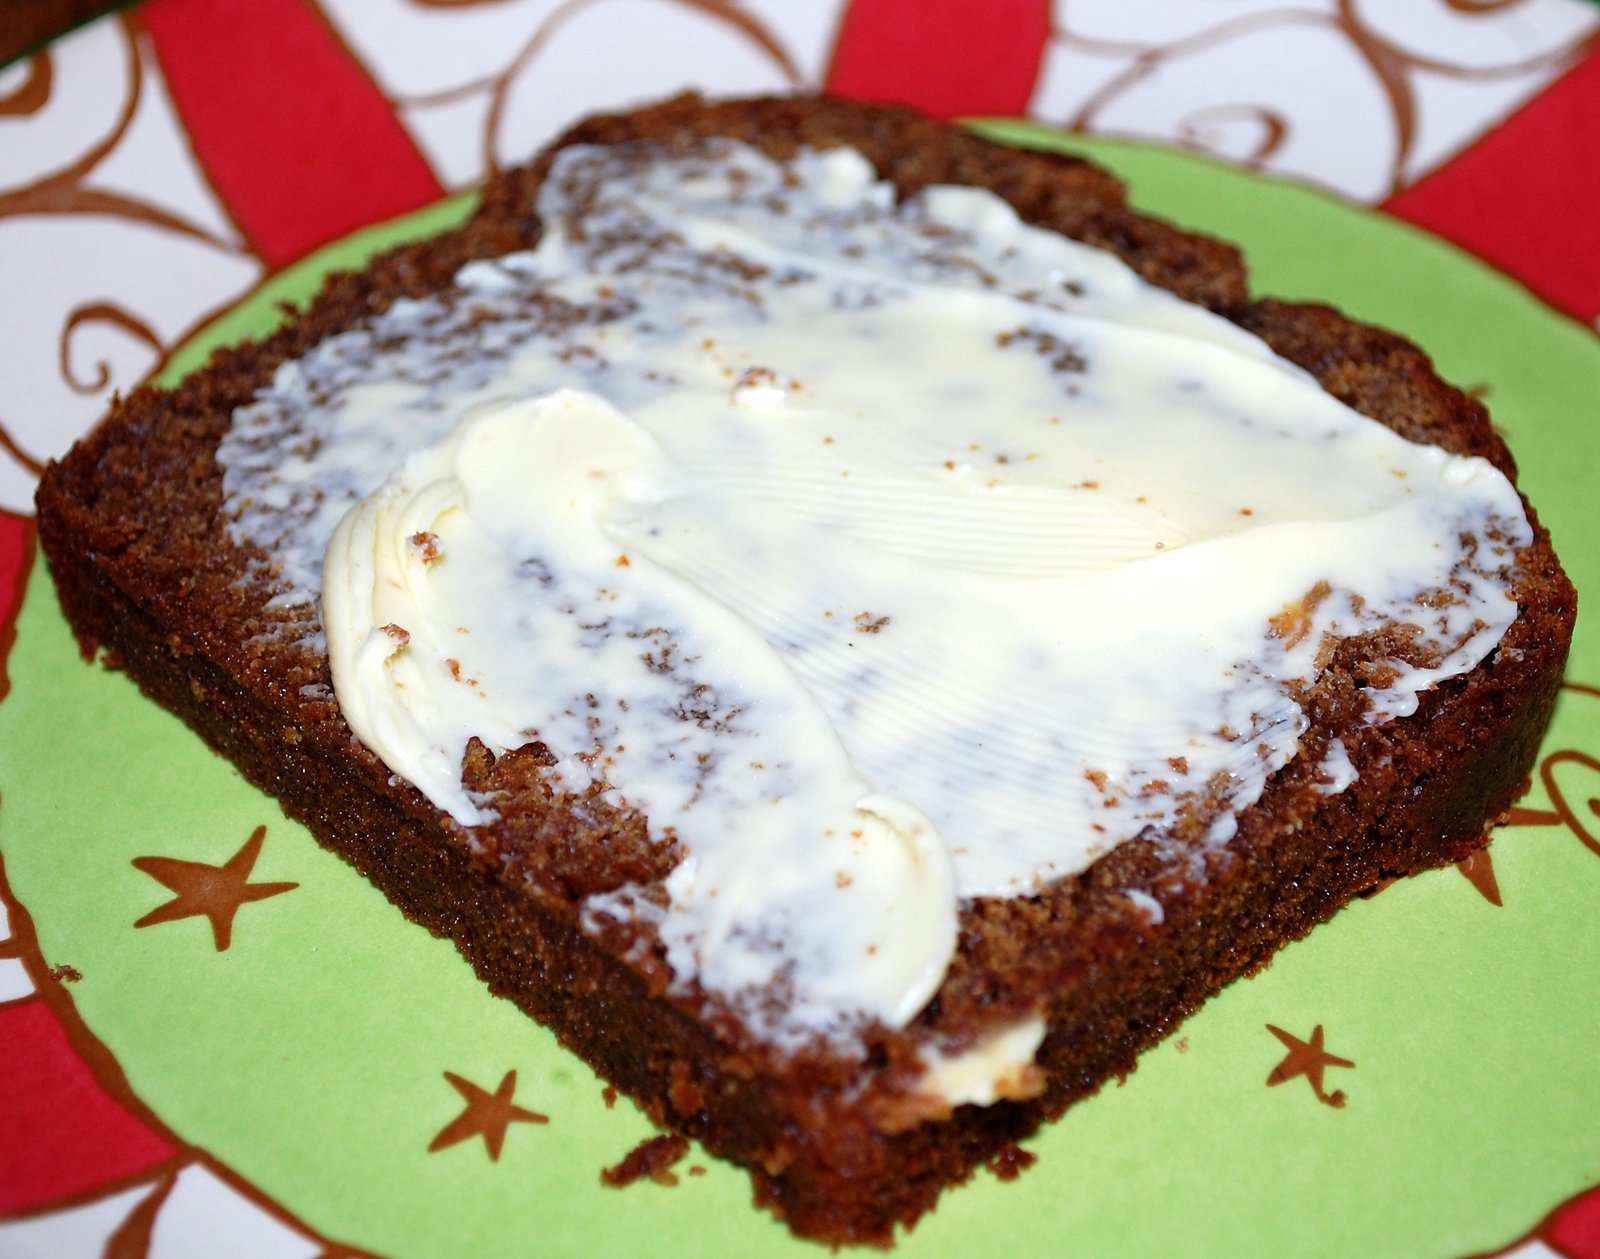 A Slice Of Homemade Gingerbread